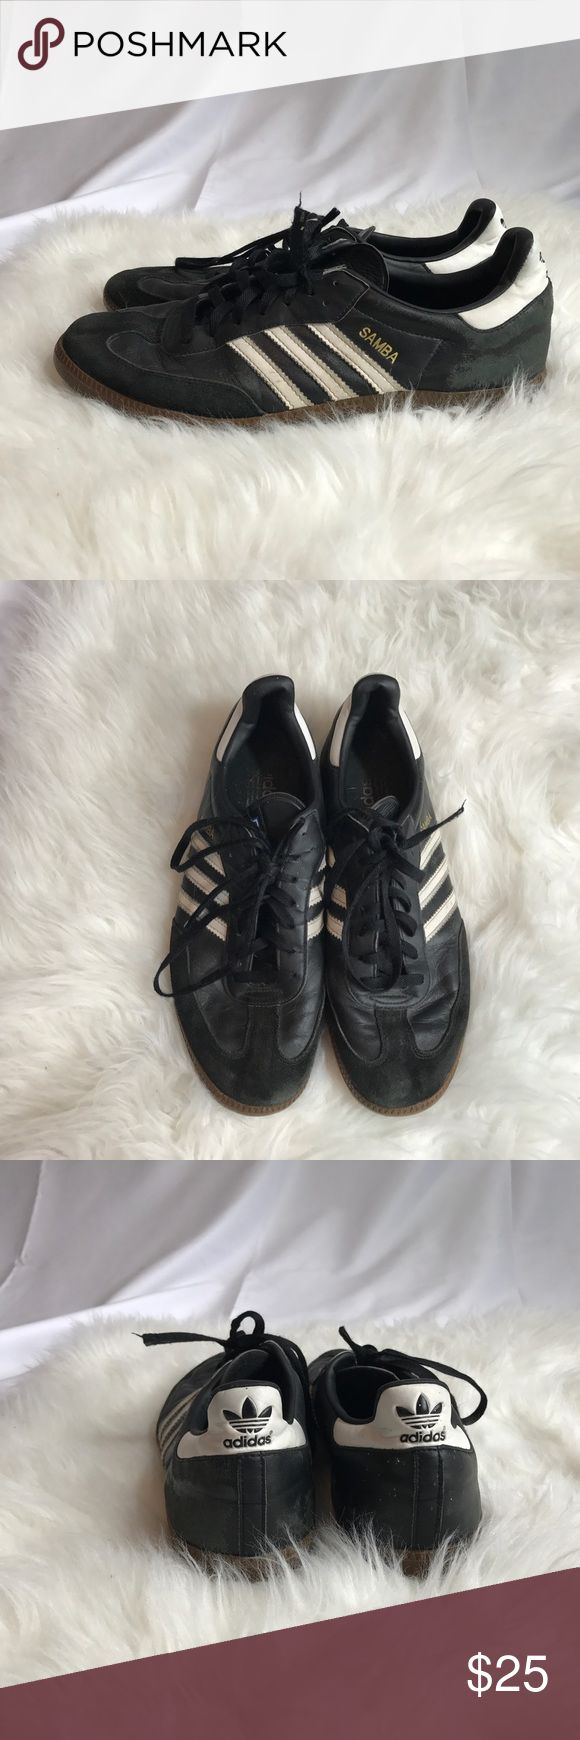 Adidas Samba size US 11,5 Old school style adidas Samba have gained popularity of comfort and stylish shoes since early 90's with mix of Suede and leather. These are worn as shown on last pictures, overall still in good condition. Adidas Shoes Sneakers